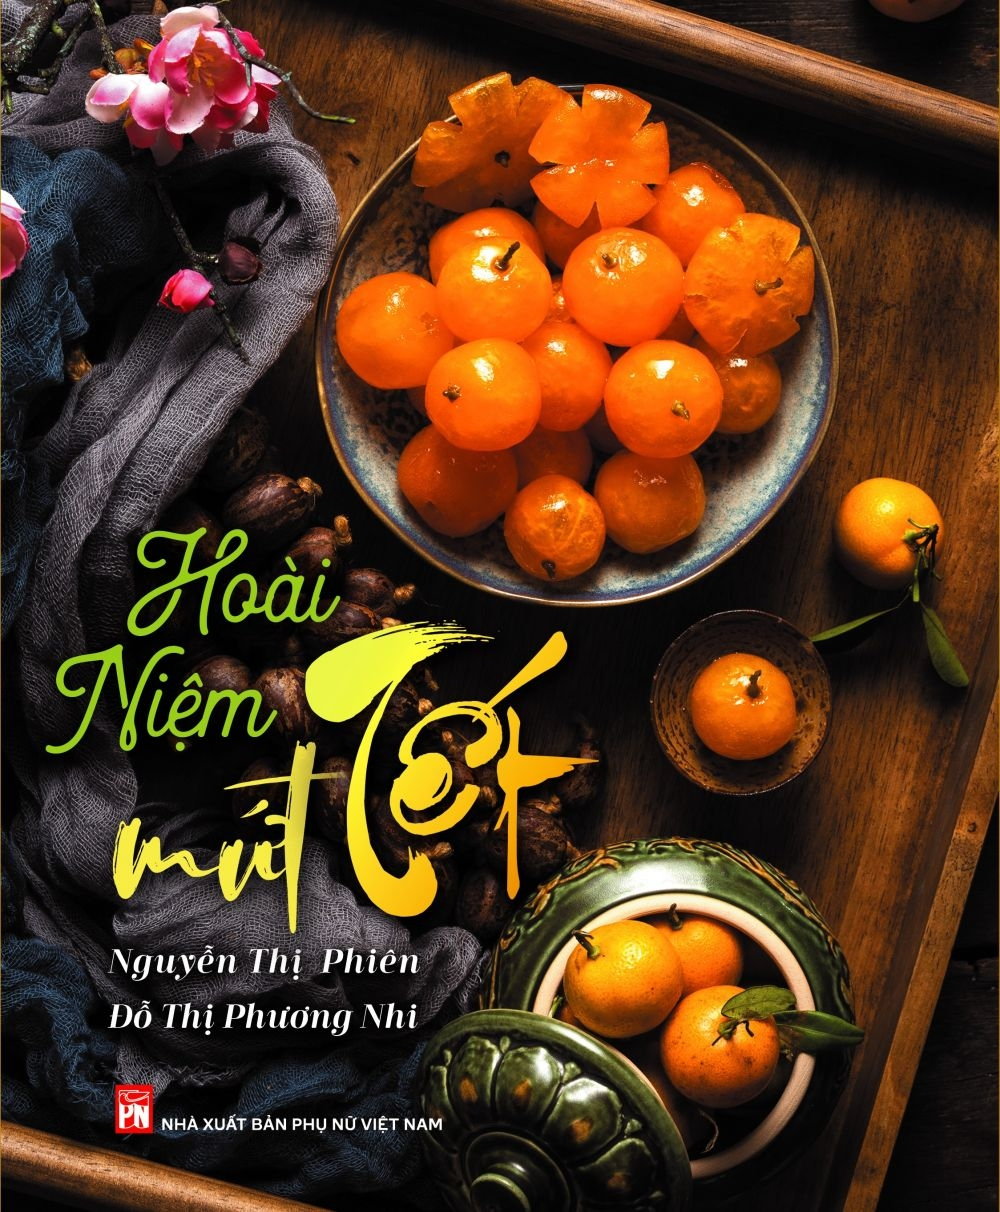 Sweet dishes in Hue style introduced in culinary book